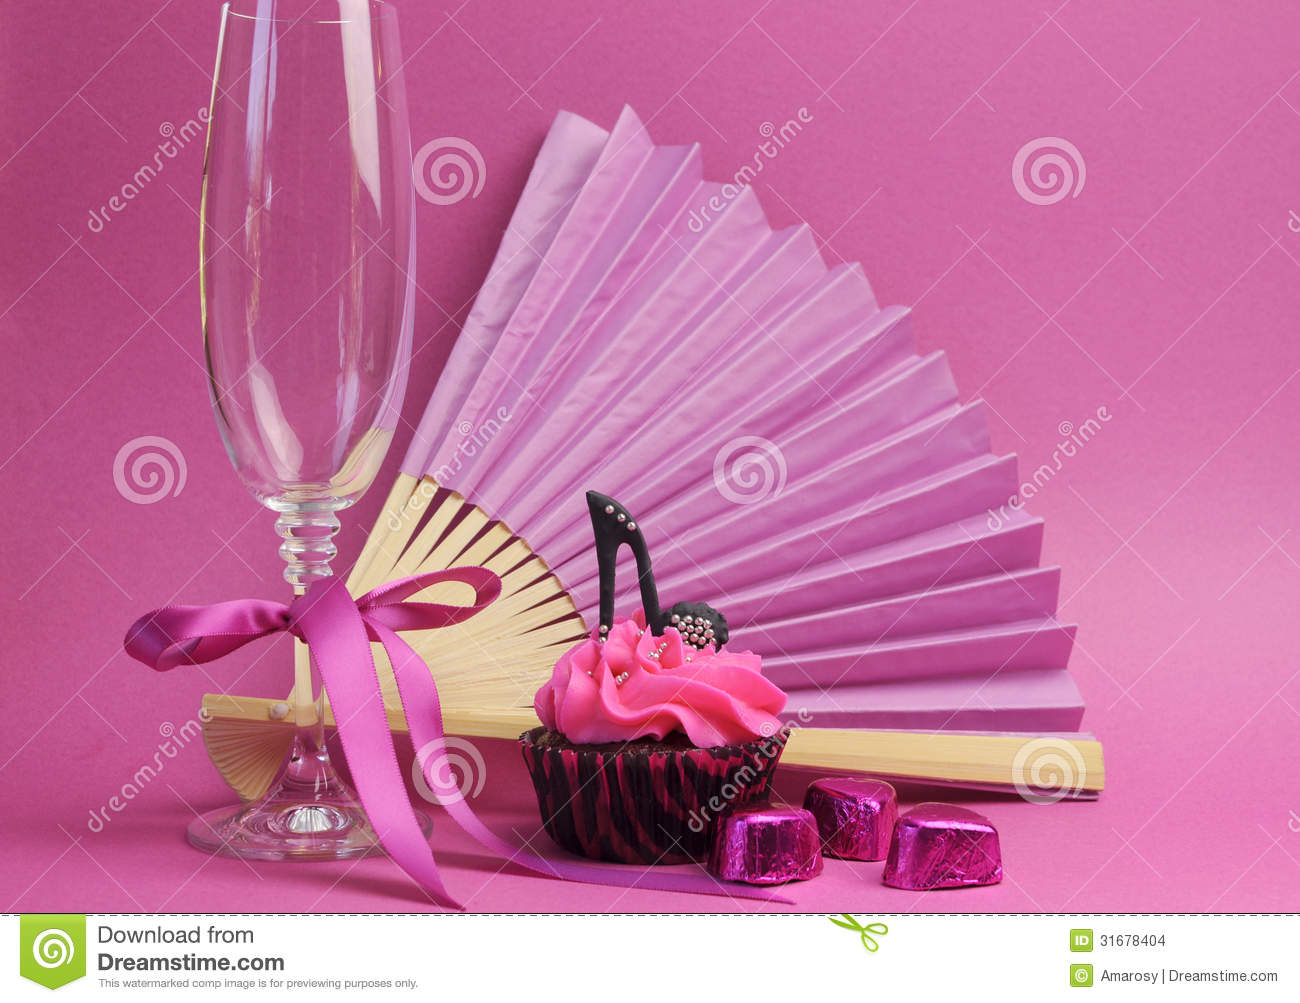 Phenomenal Pink Party Decorations With Fan Champagne Glass And High Heel Birthday Cards Printable Opercafe Filternl